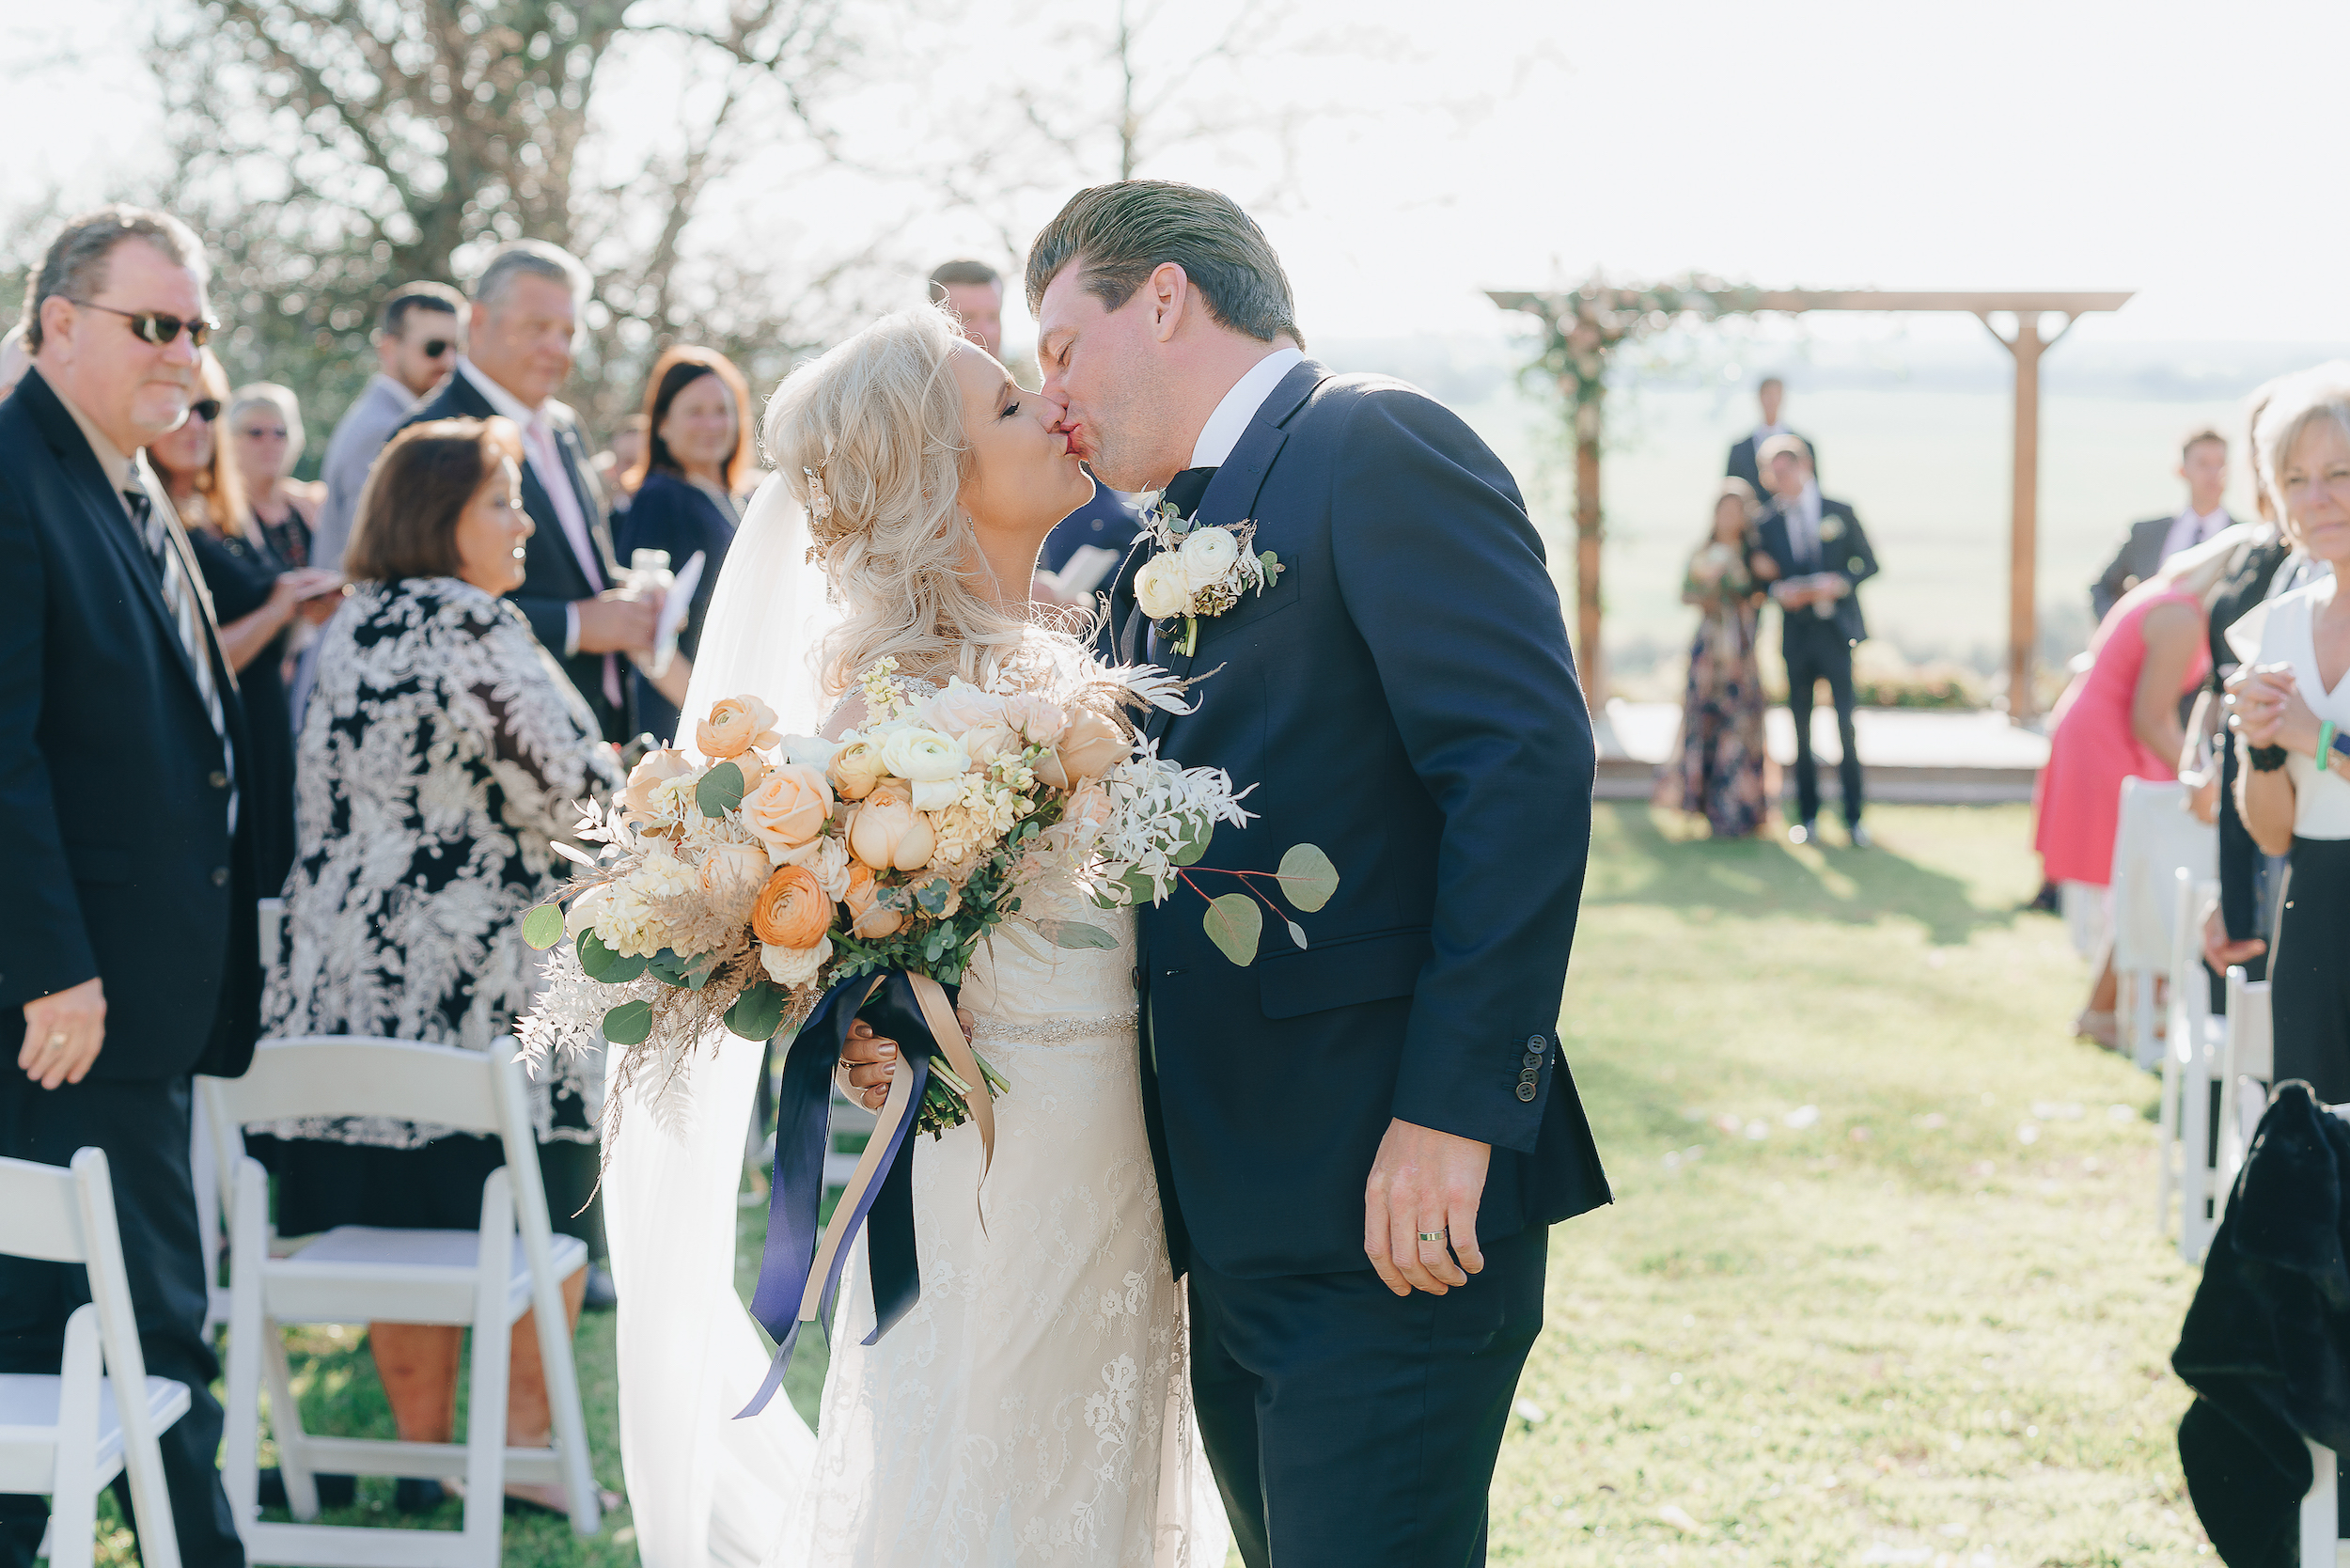 Bride and Groom kissing at the end of the aisle.